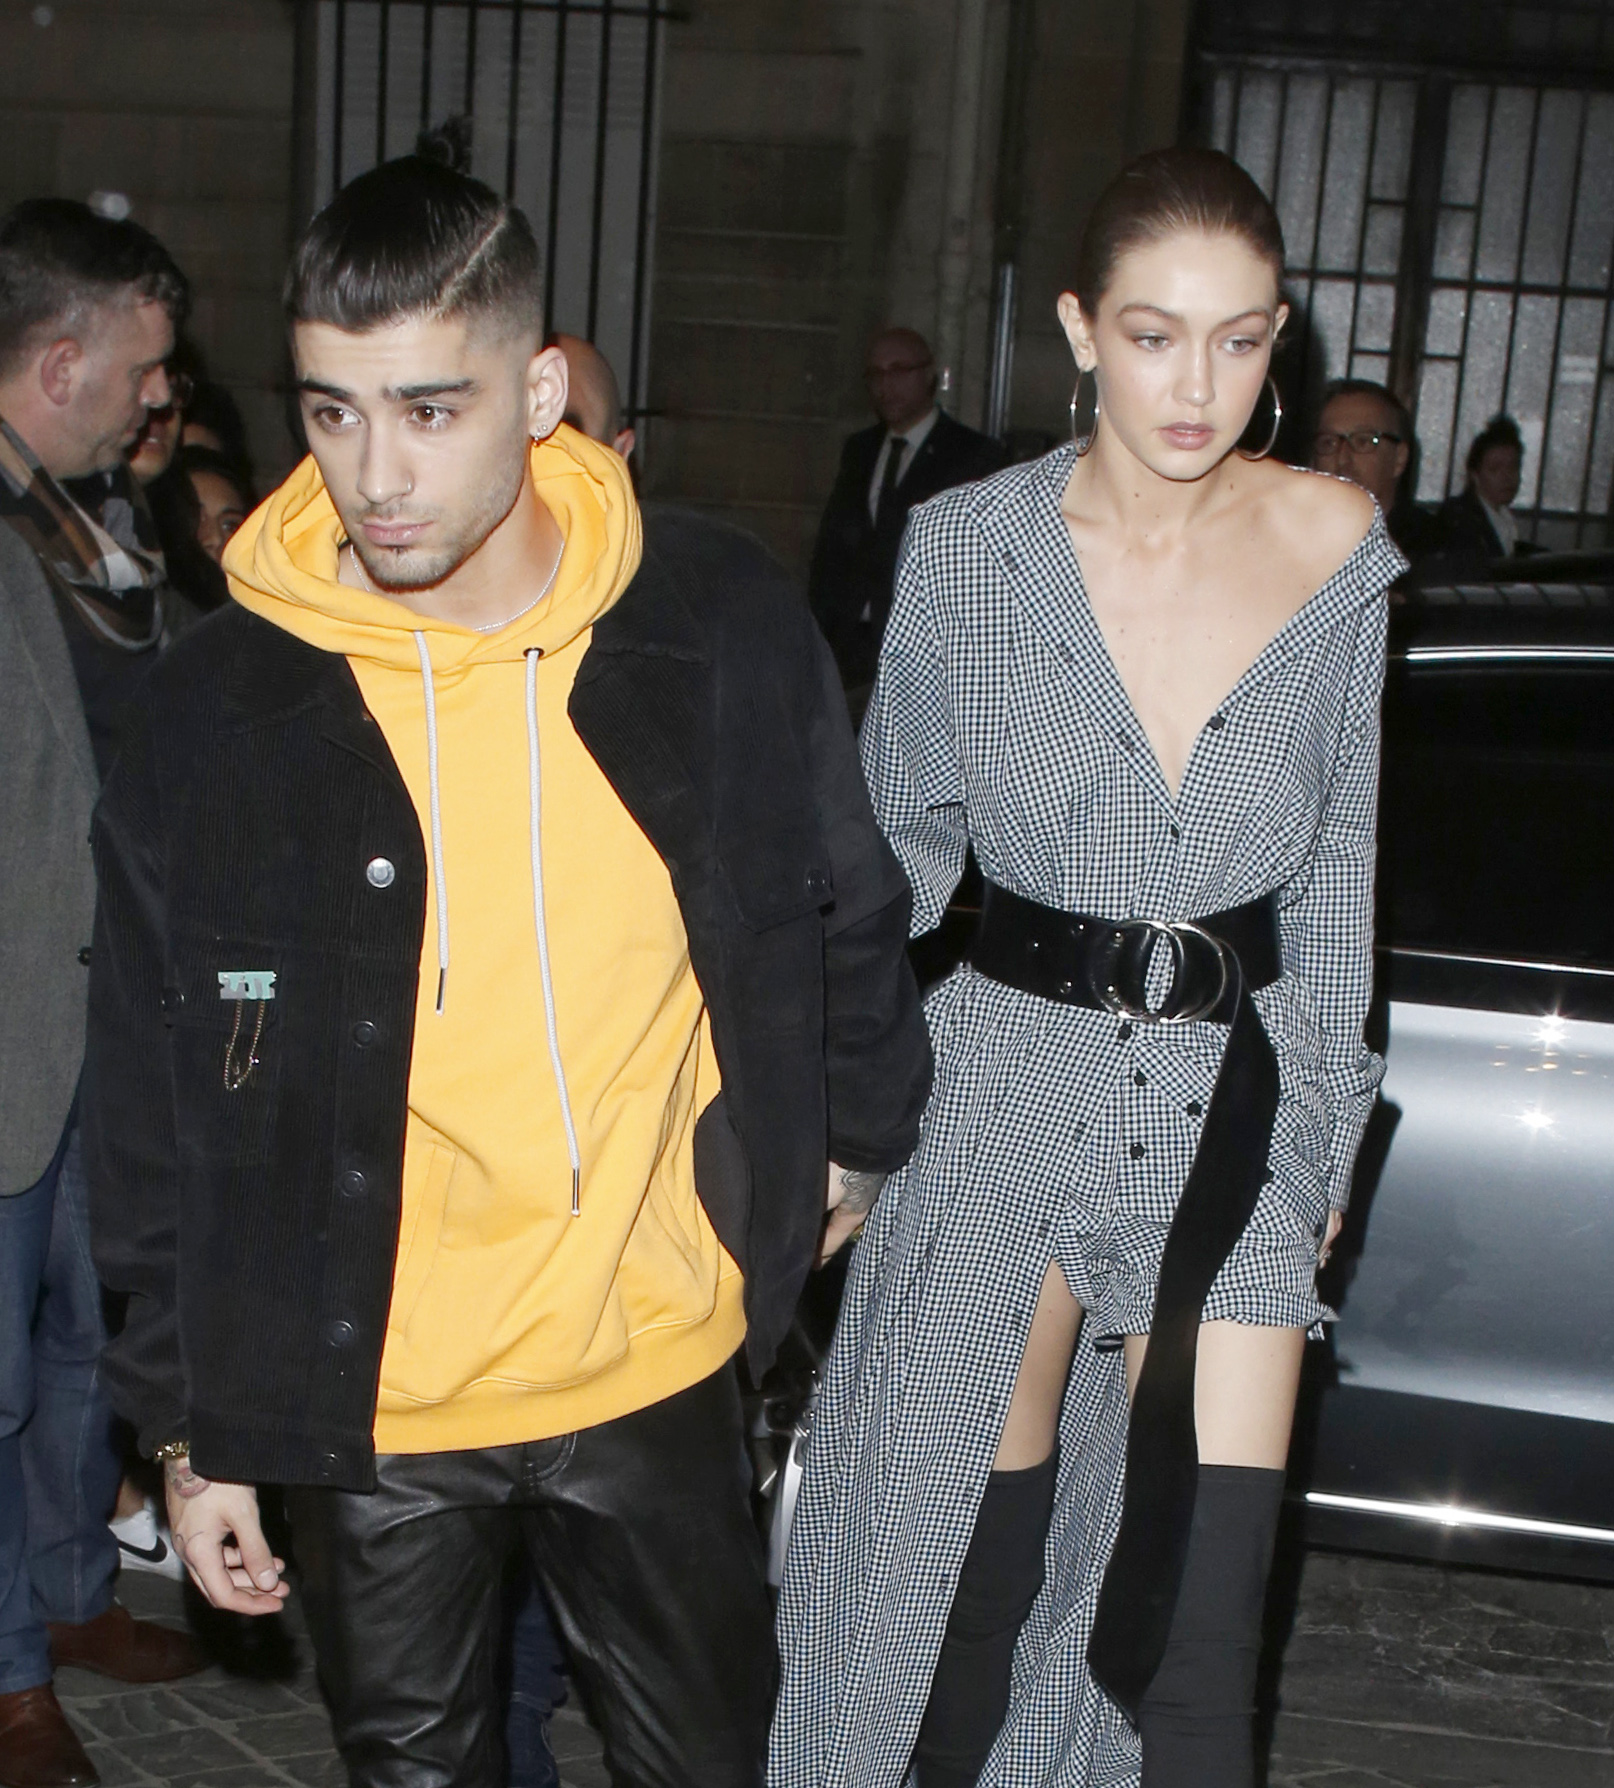 Gigi Hadid Wows In Gingham Dress And Thigh-High Boots With Zayn Malik For Vogue Cocktail Party